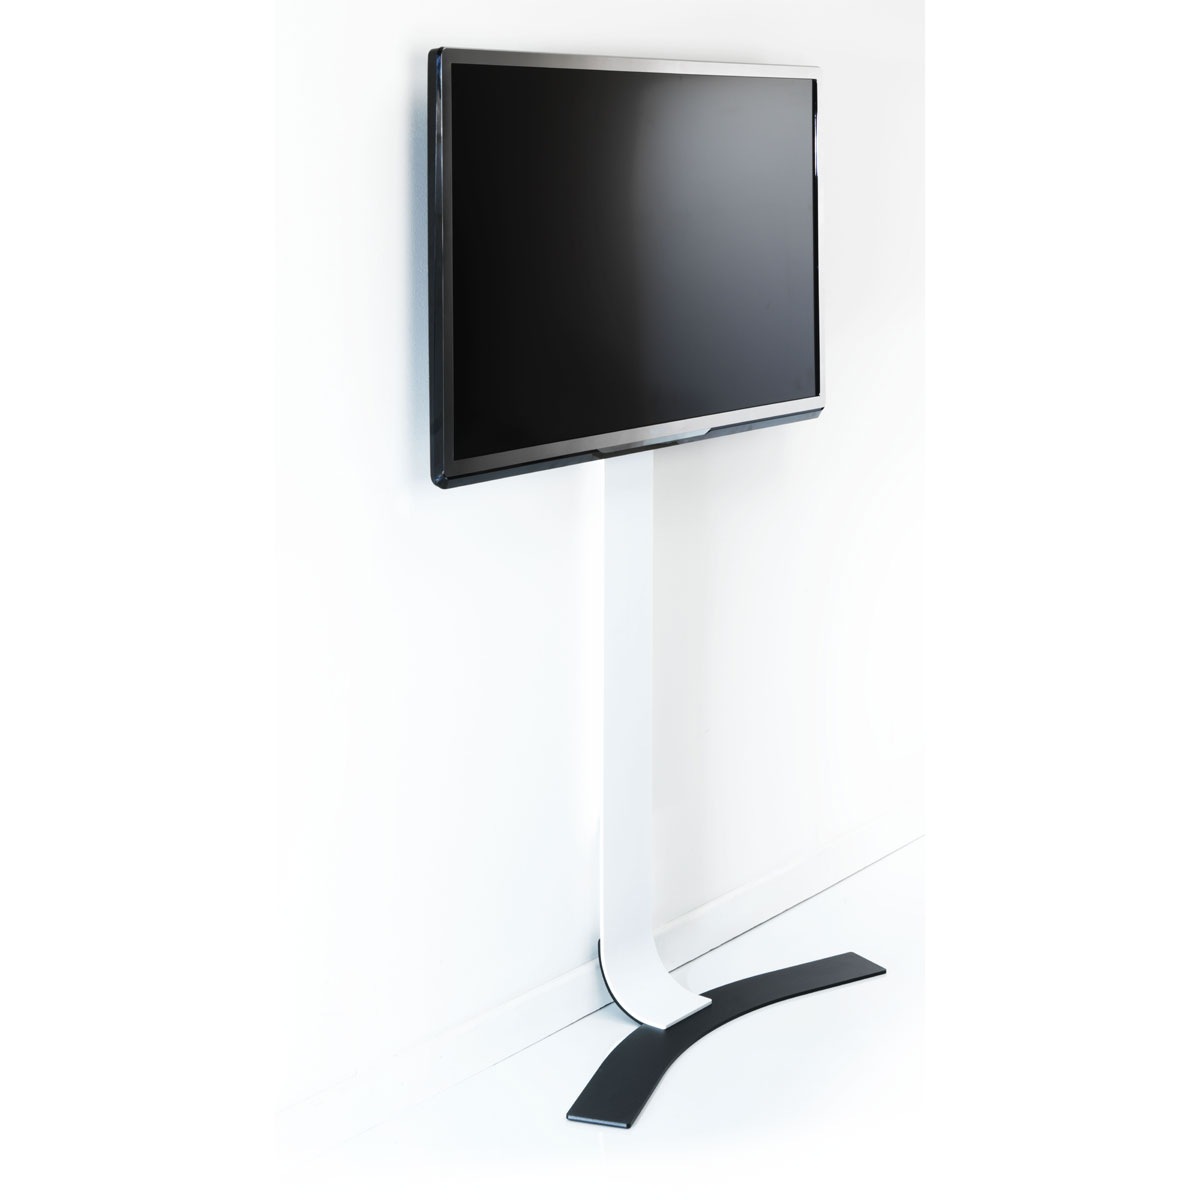 Erard Standit 600 Support Mural Tv Erard Group Sur